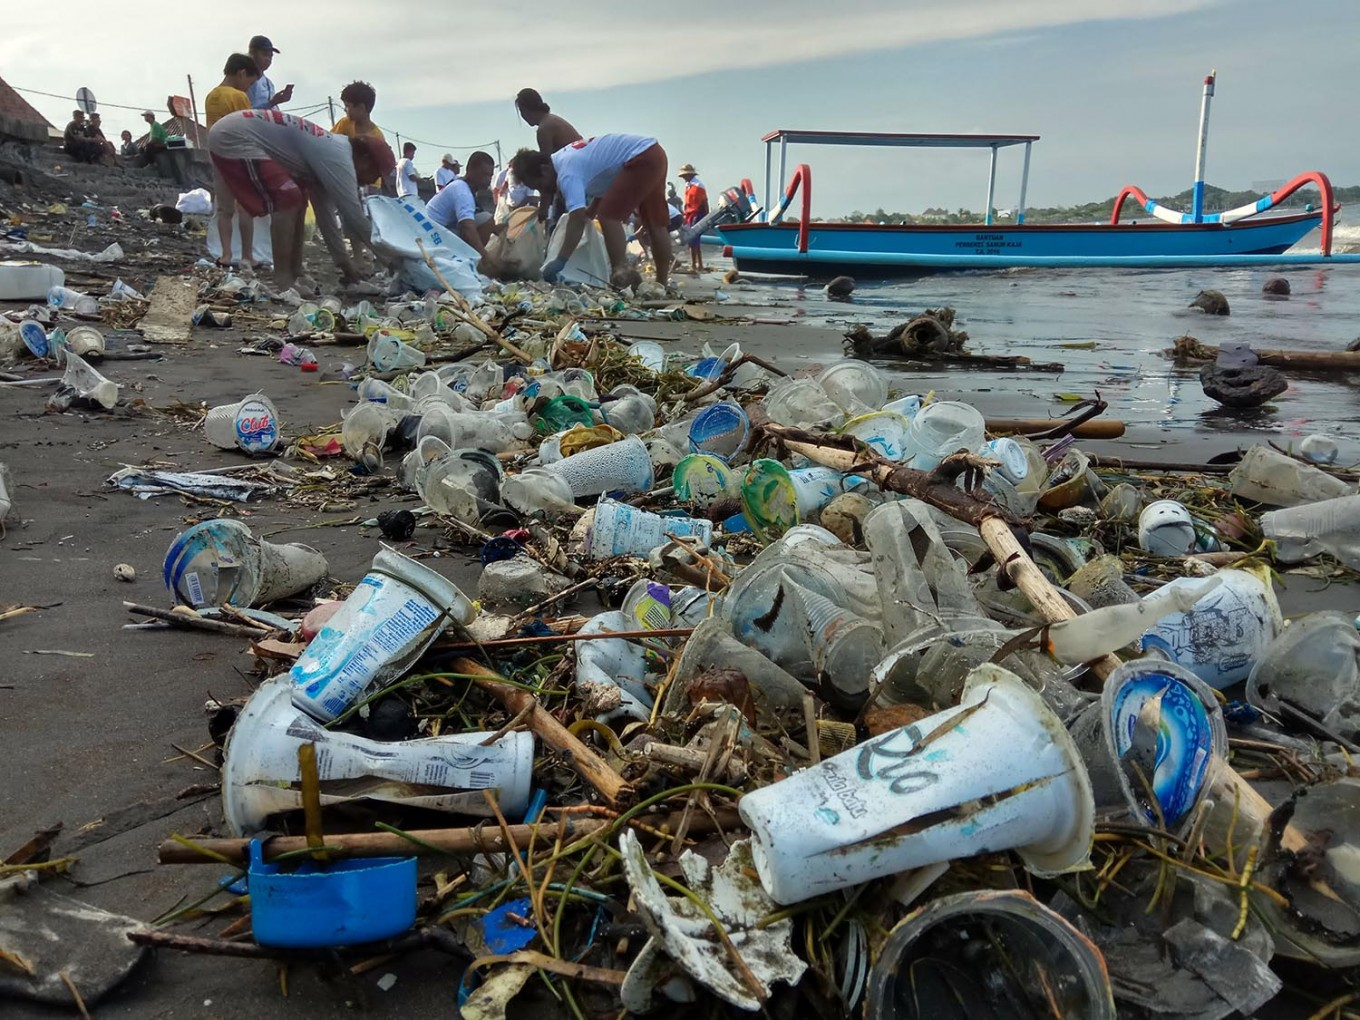 'The Story of Plastic' uncovers ugly truth of global plastic crisis